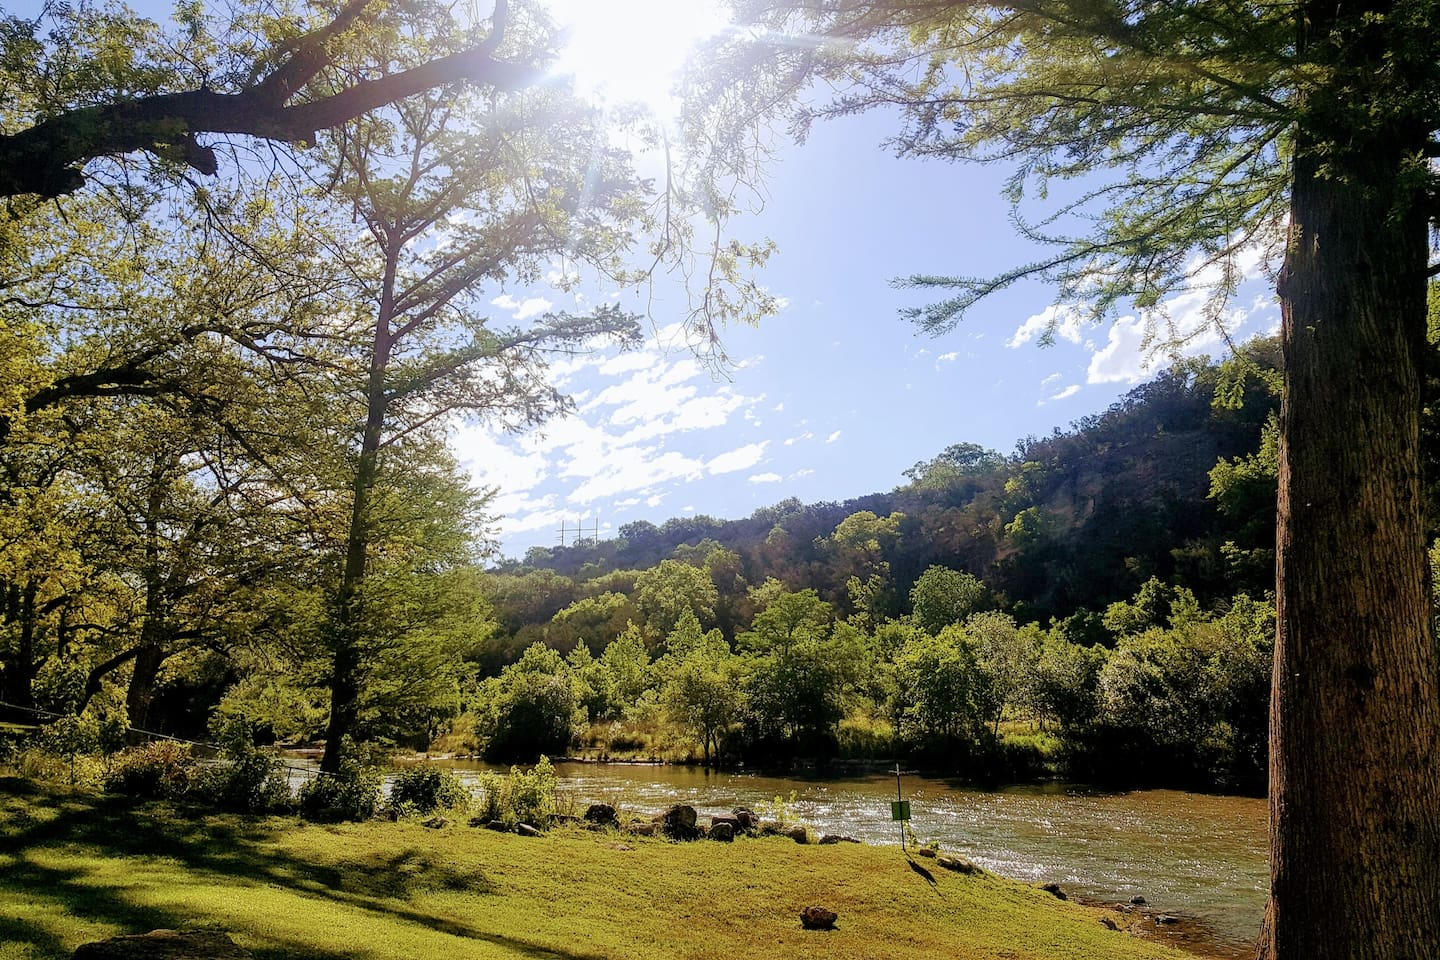 You deserve a peaceful getaway that only the beauty of the Guadalupe River can offer.